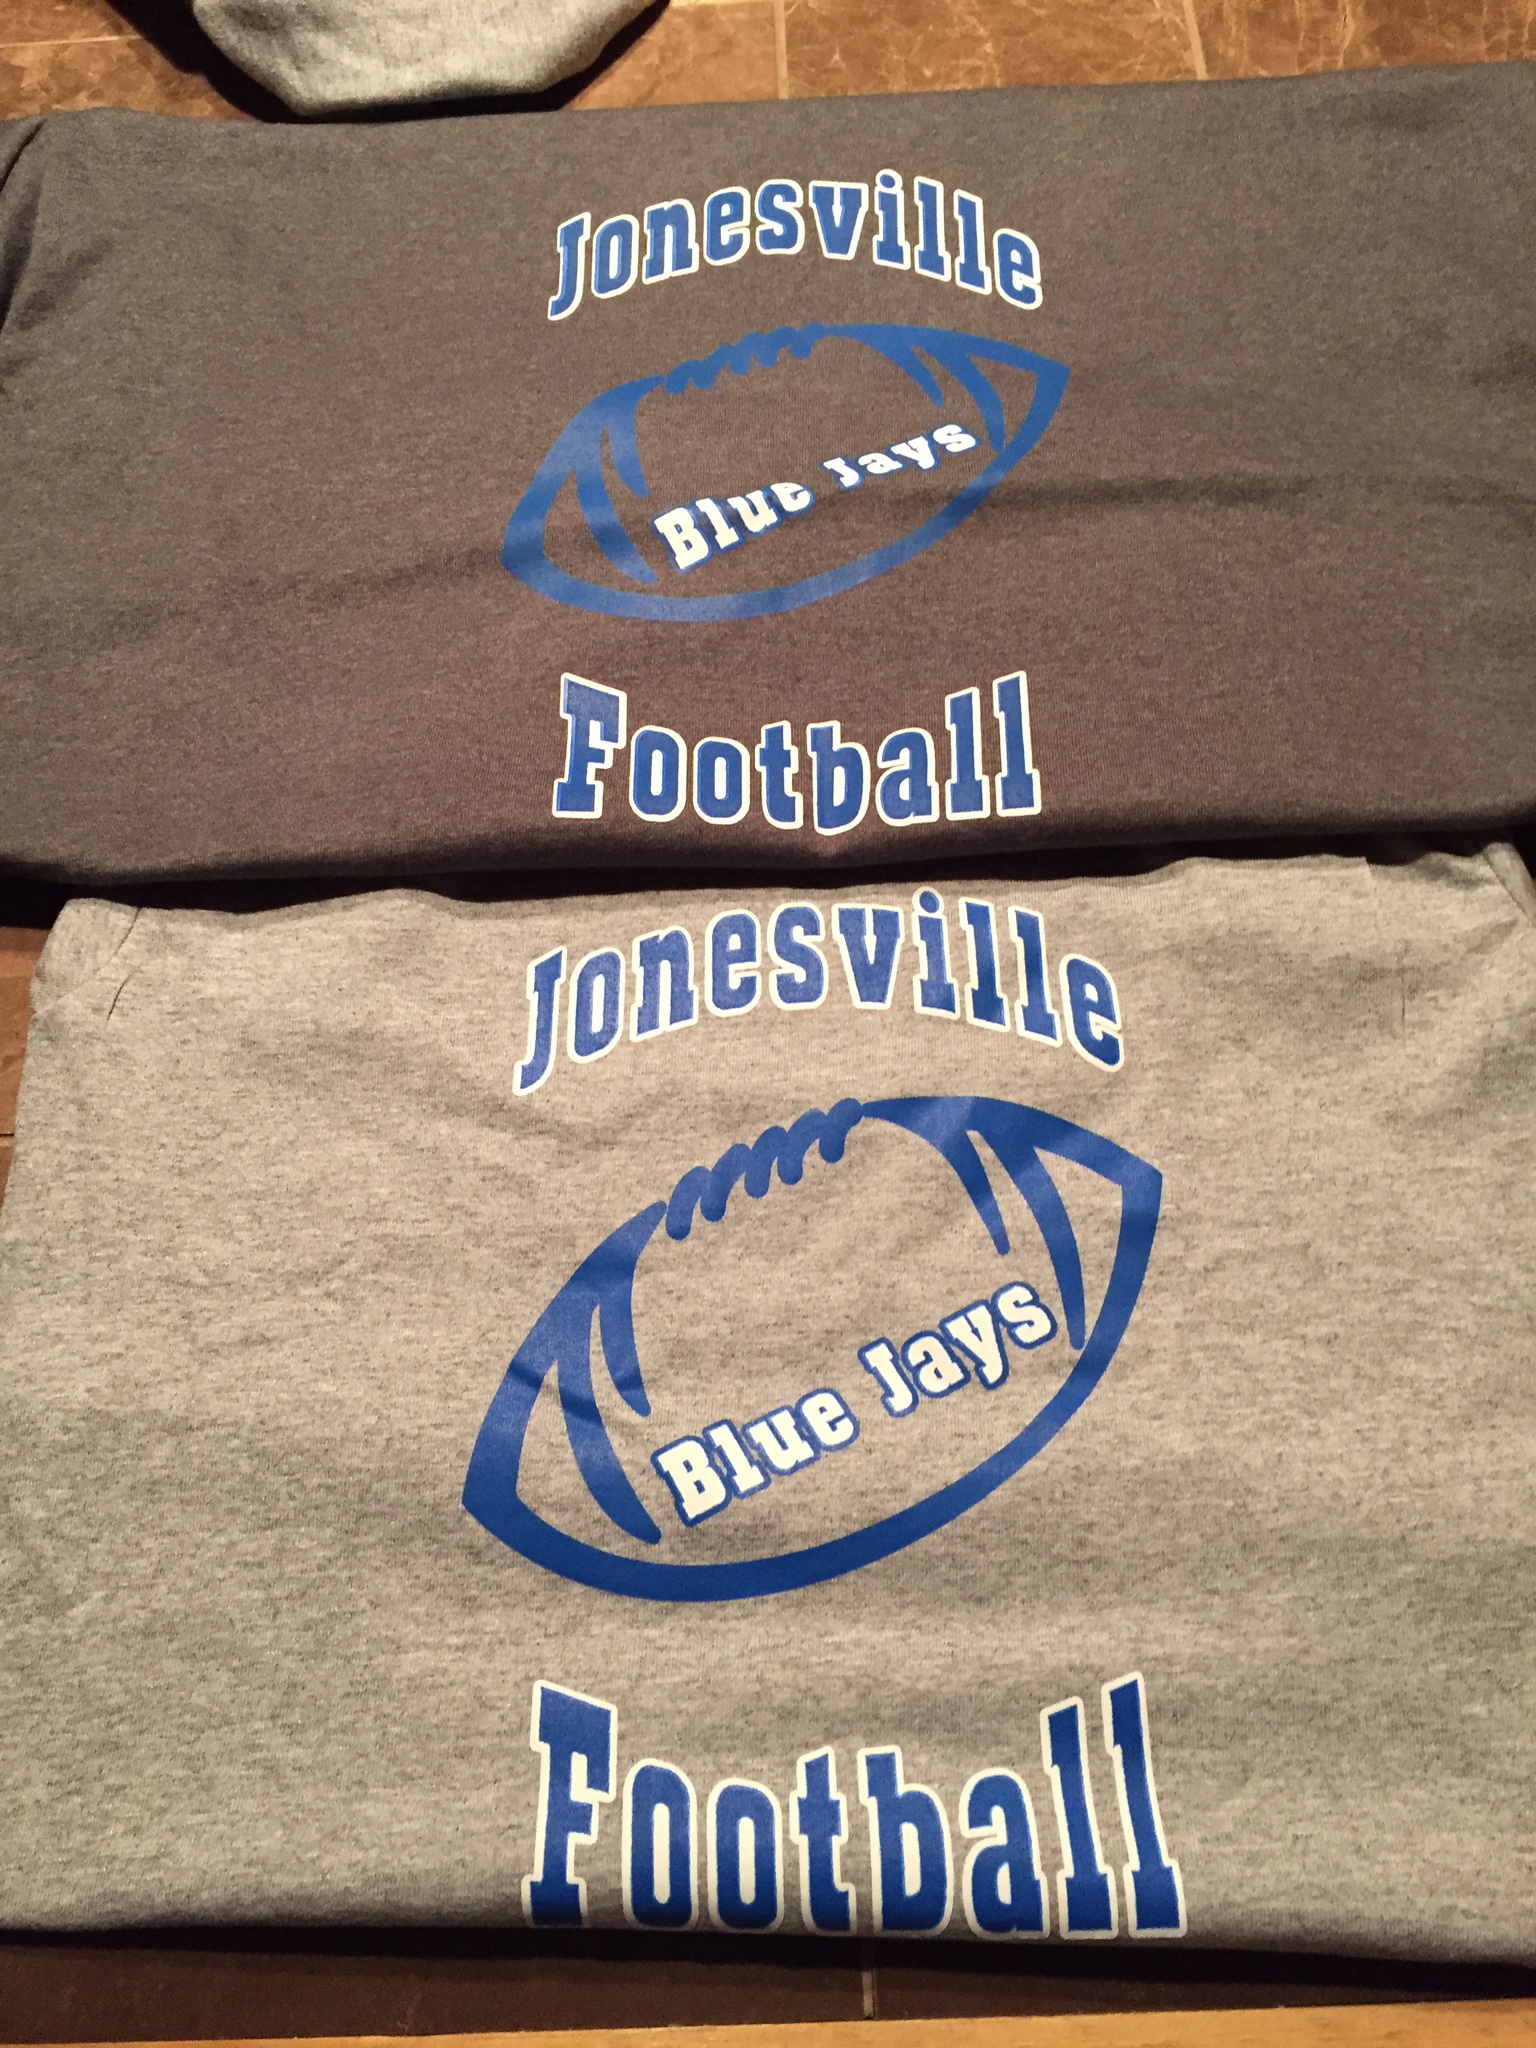 Jonesville Football